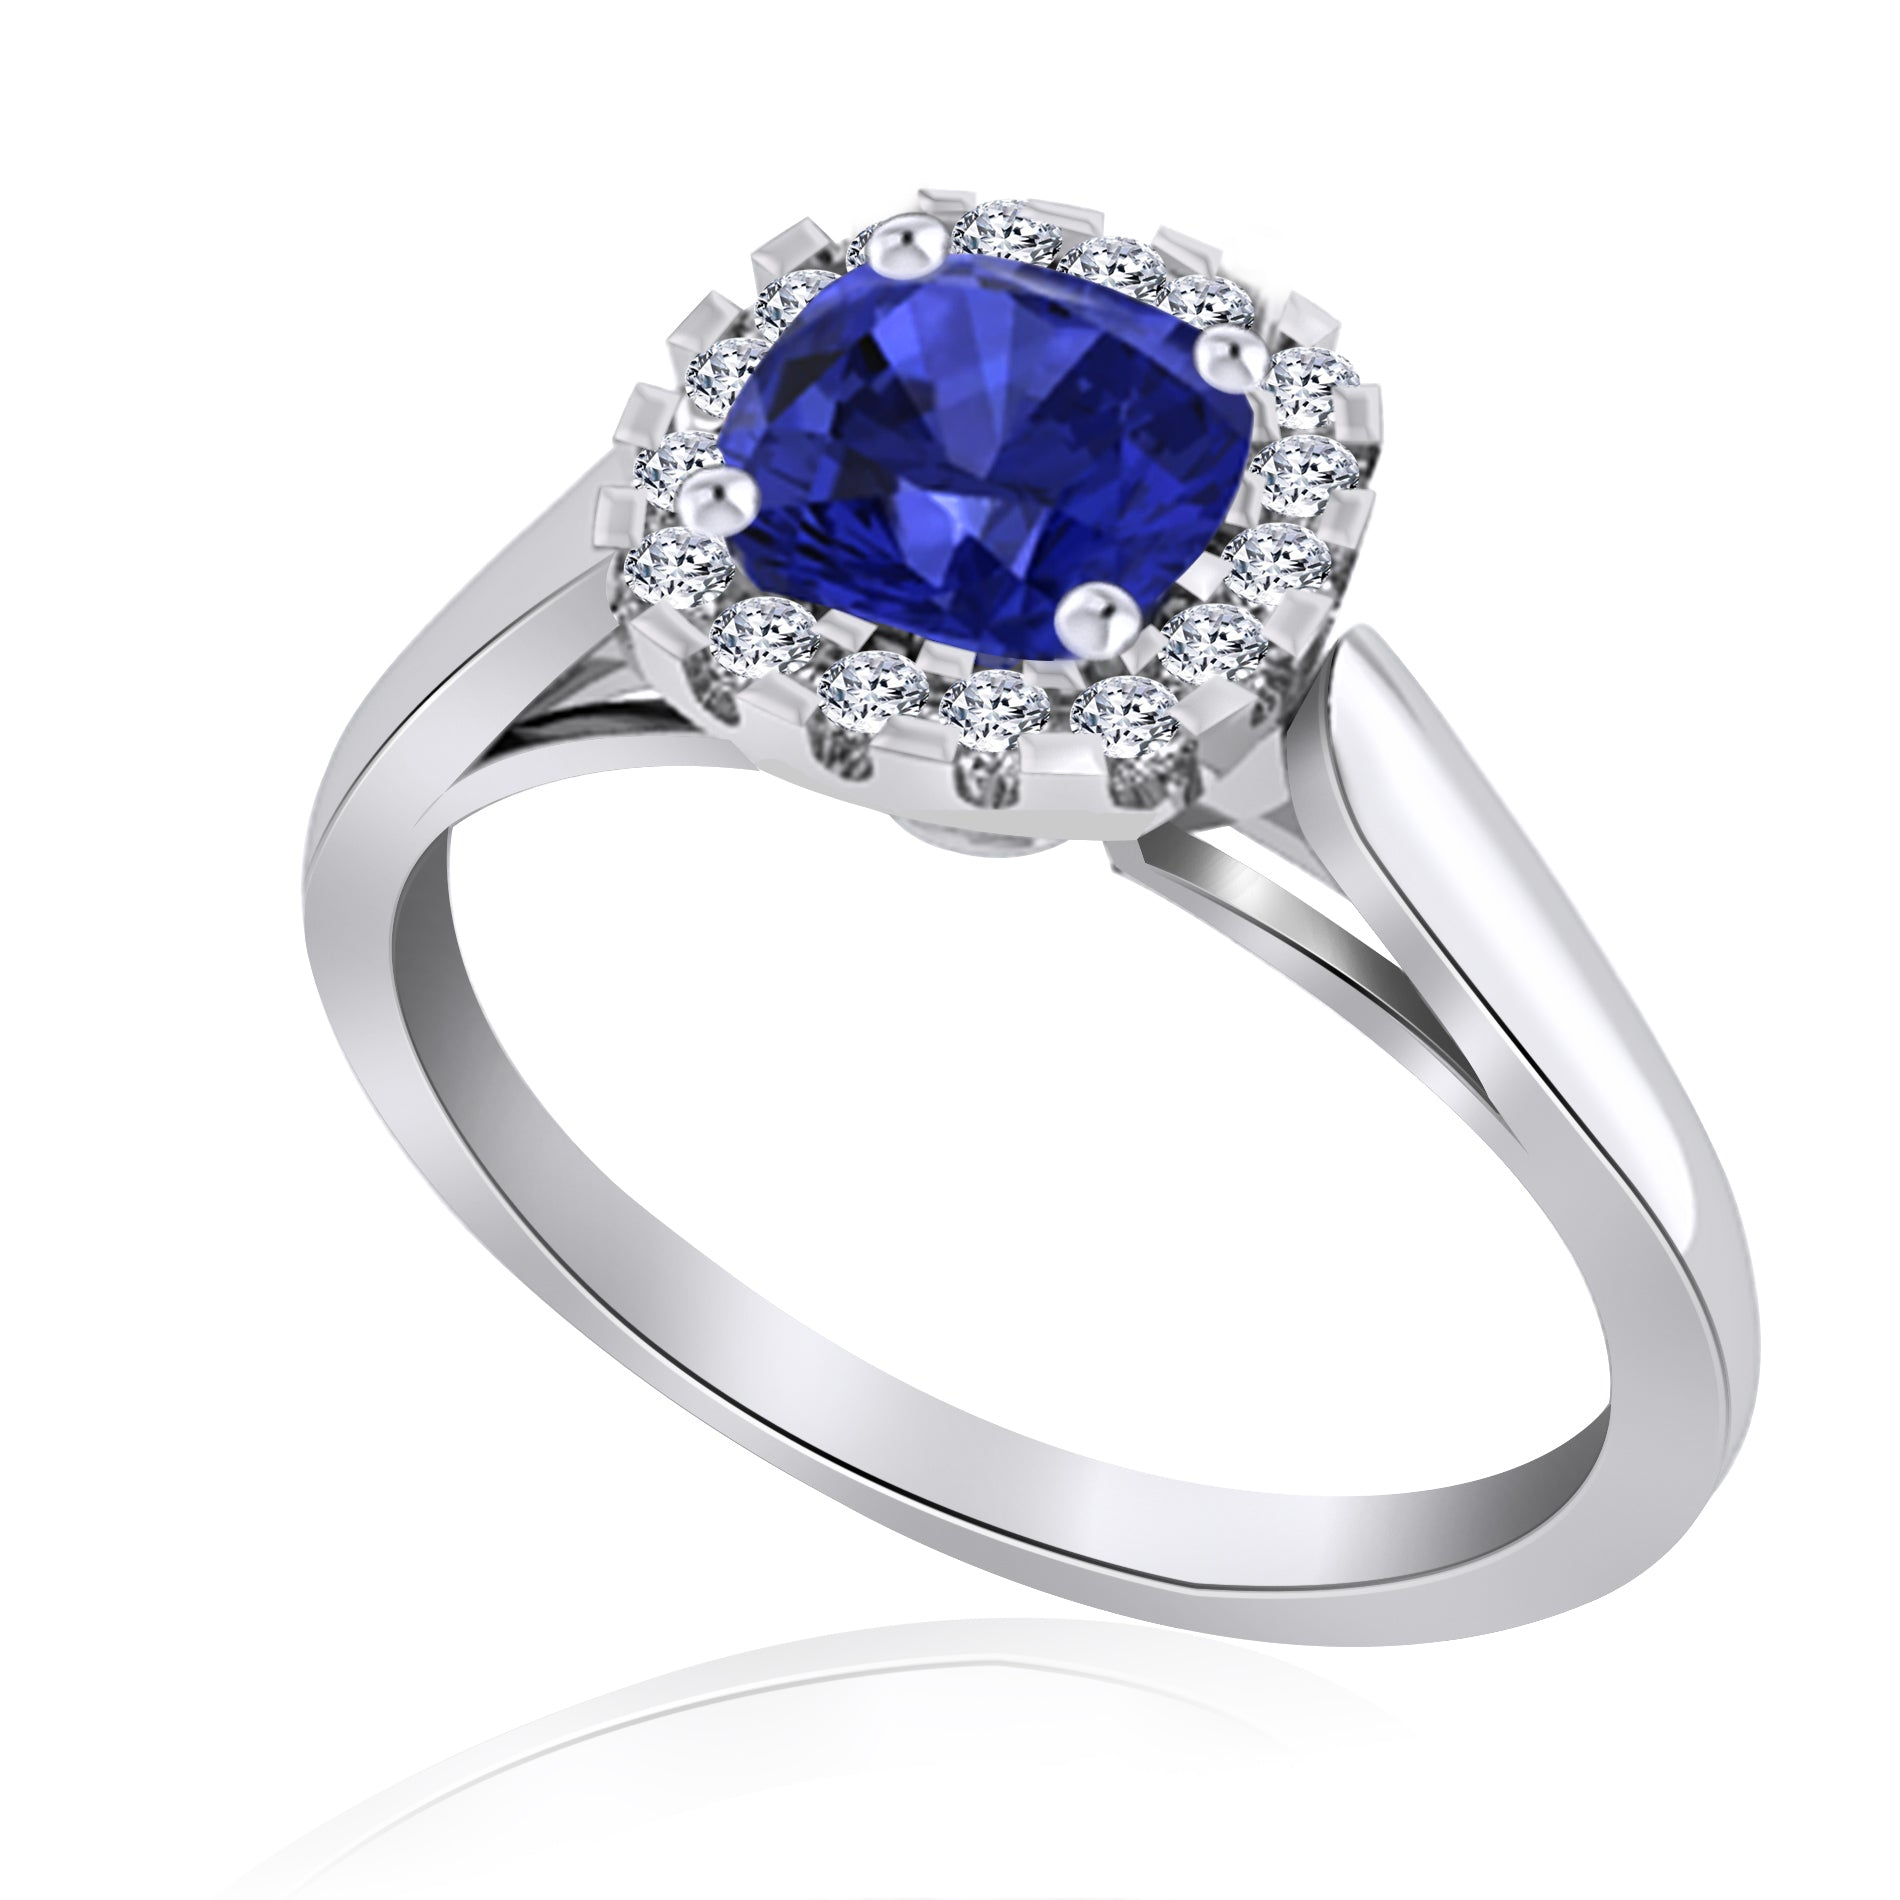 14K White Gold Tanzanite Ring with Diamond Halo